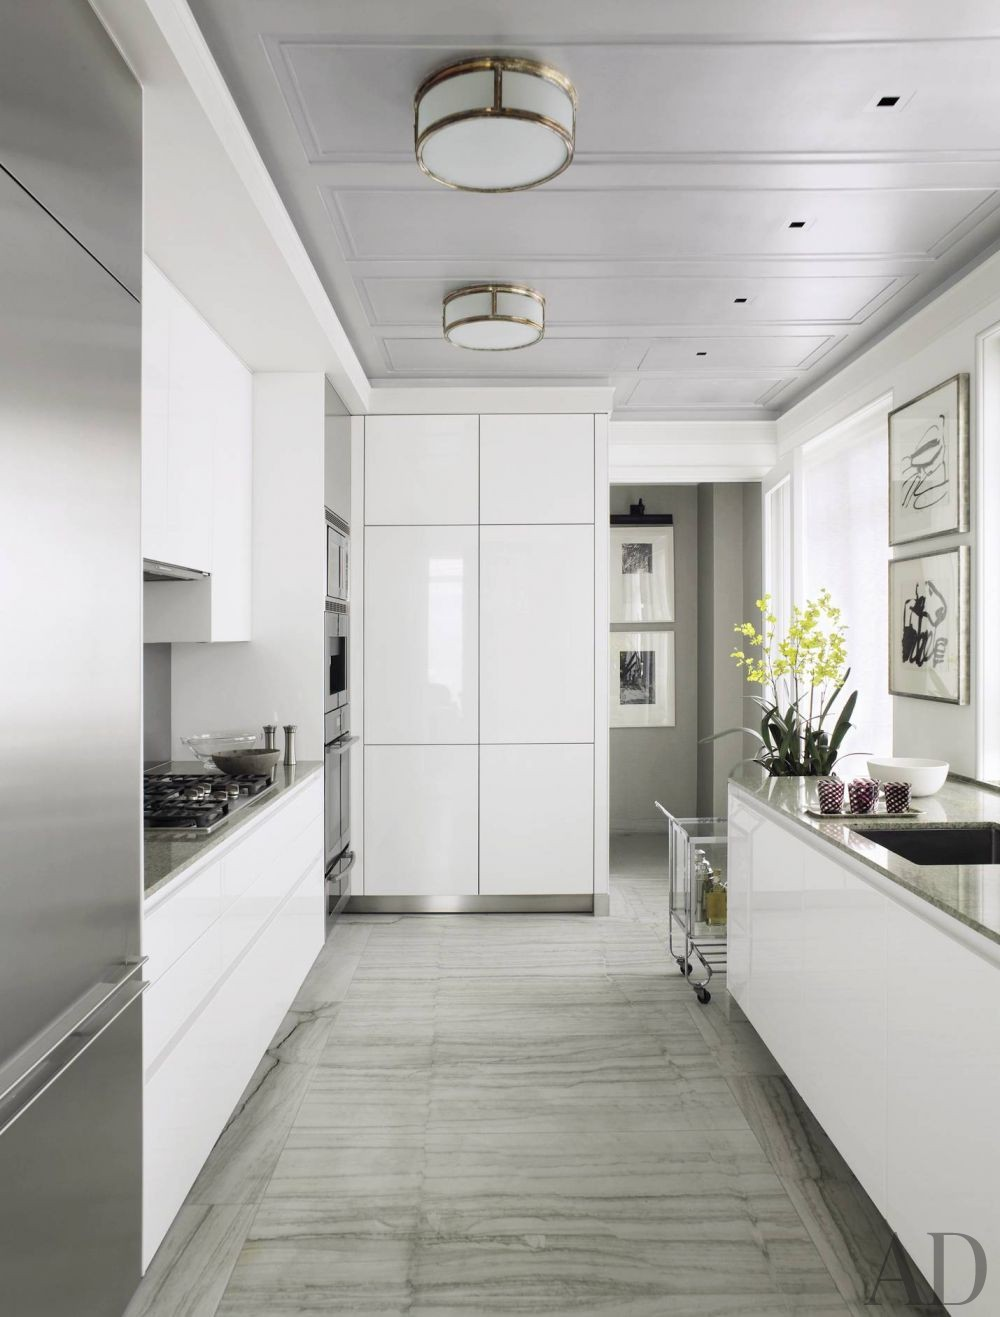 Modern Kitchen by Michael S. Smith Inc. and Ferguson & Shamamian Architects in New York City